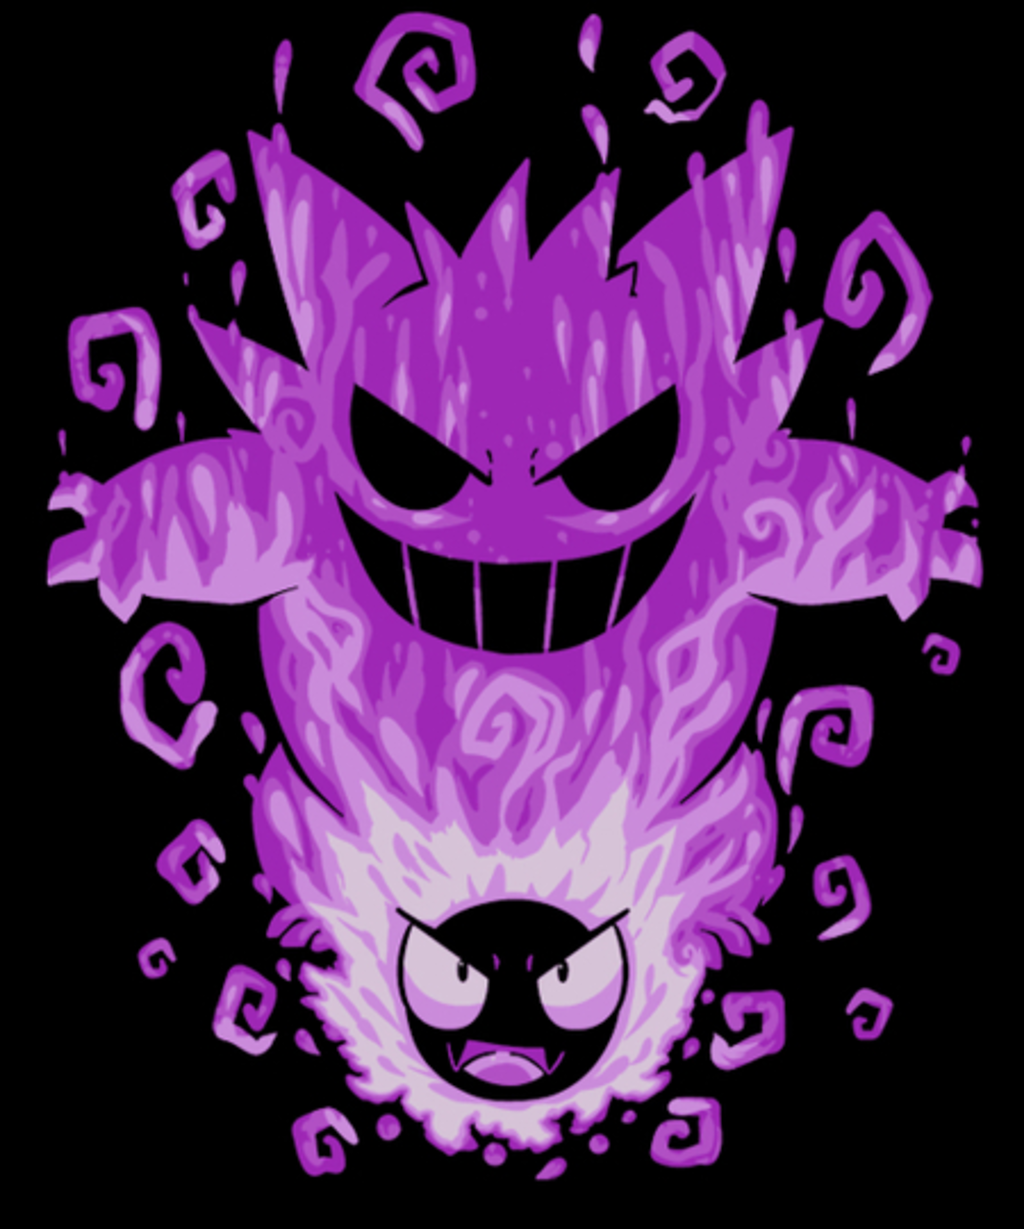 Qwertee: The Menacing Ghost Within